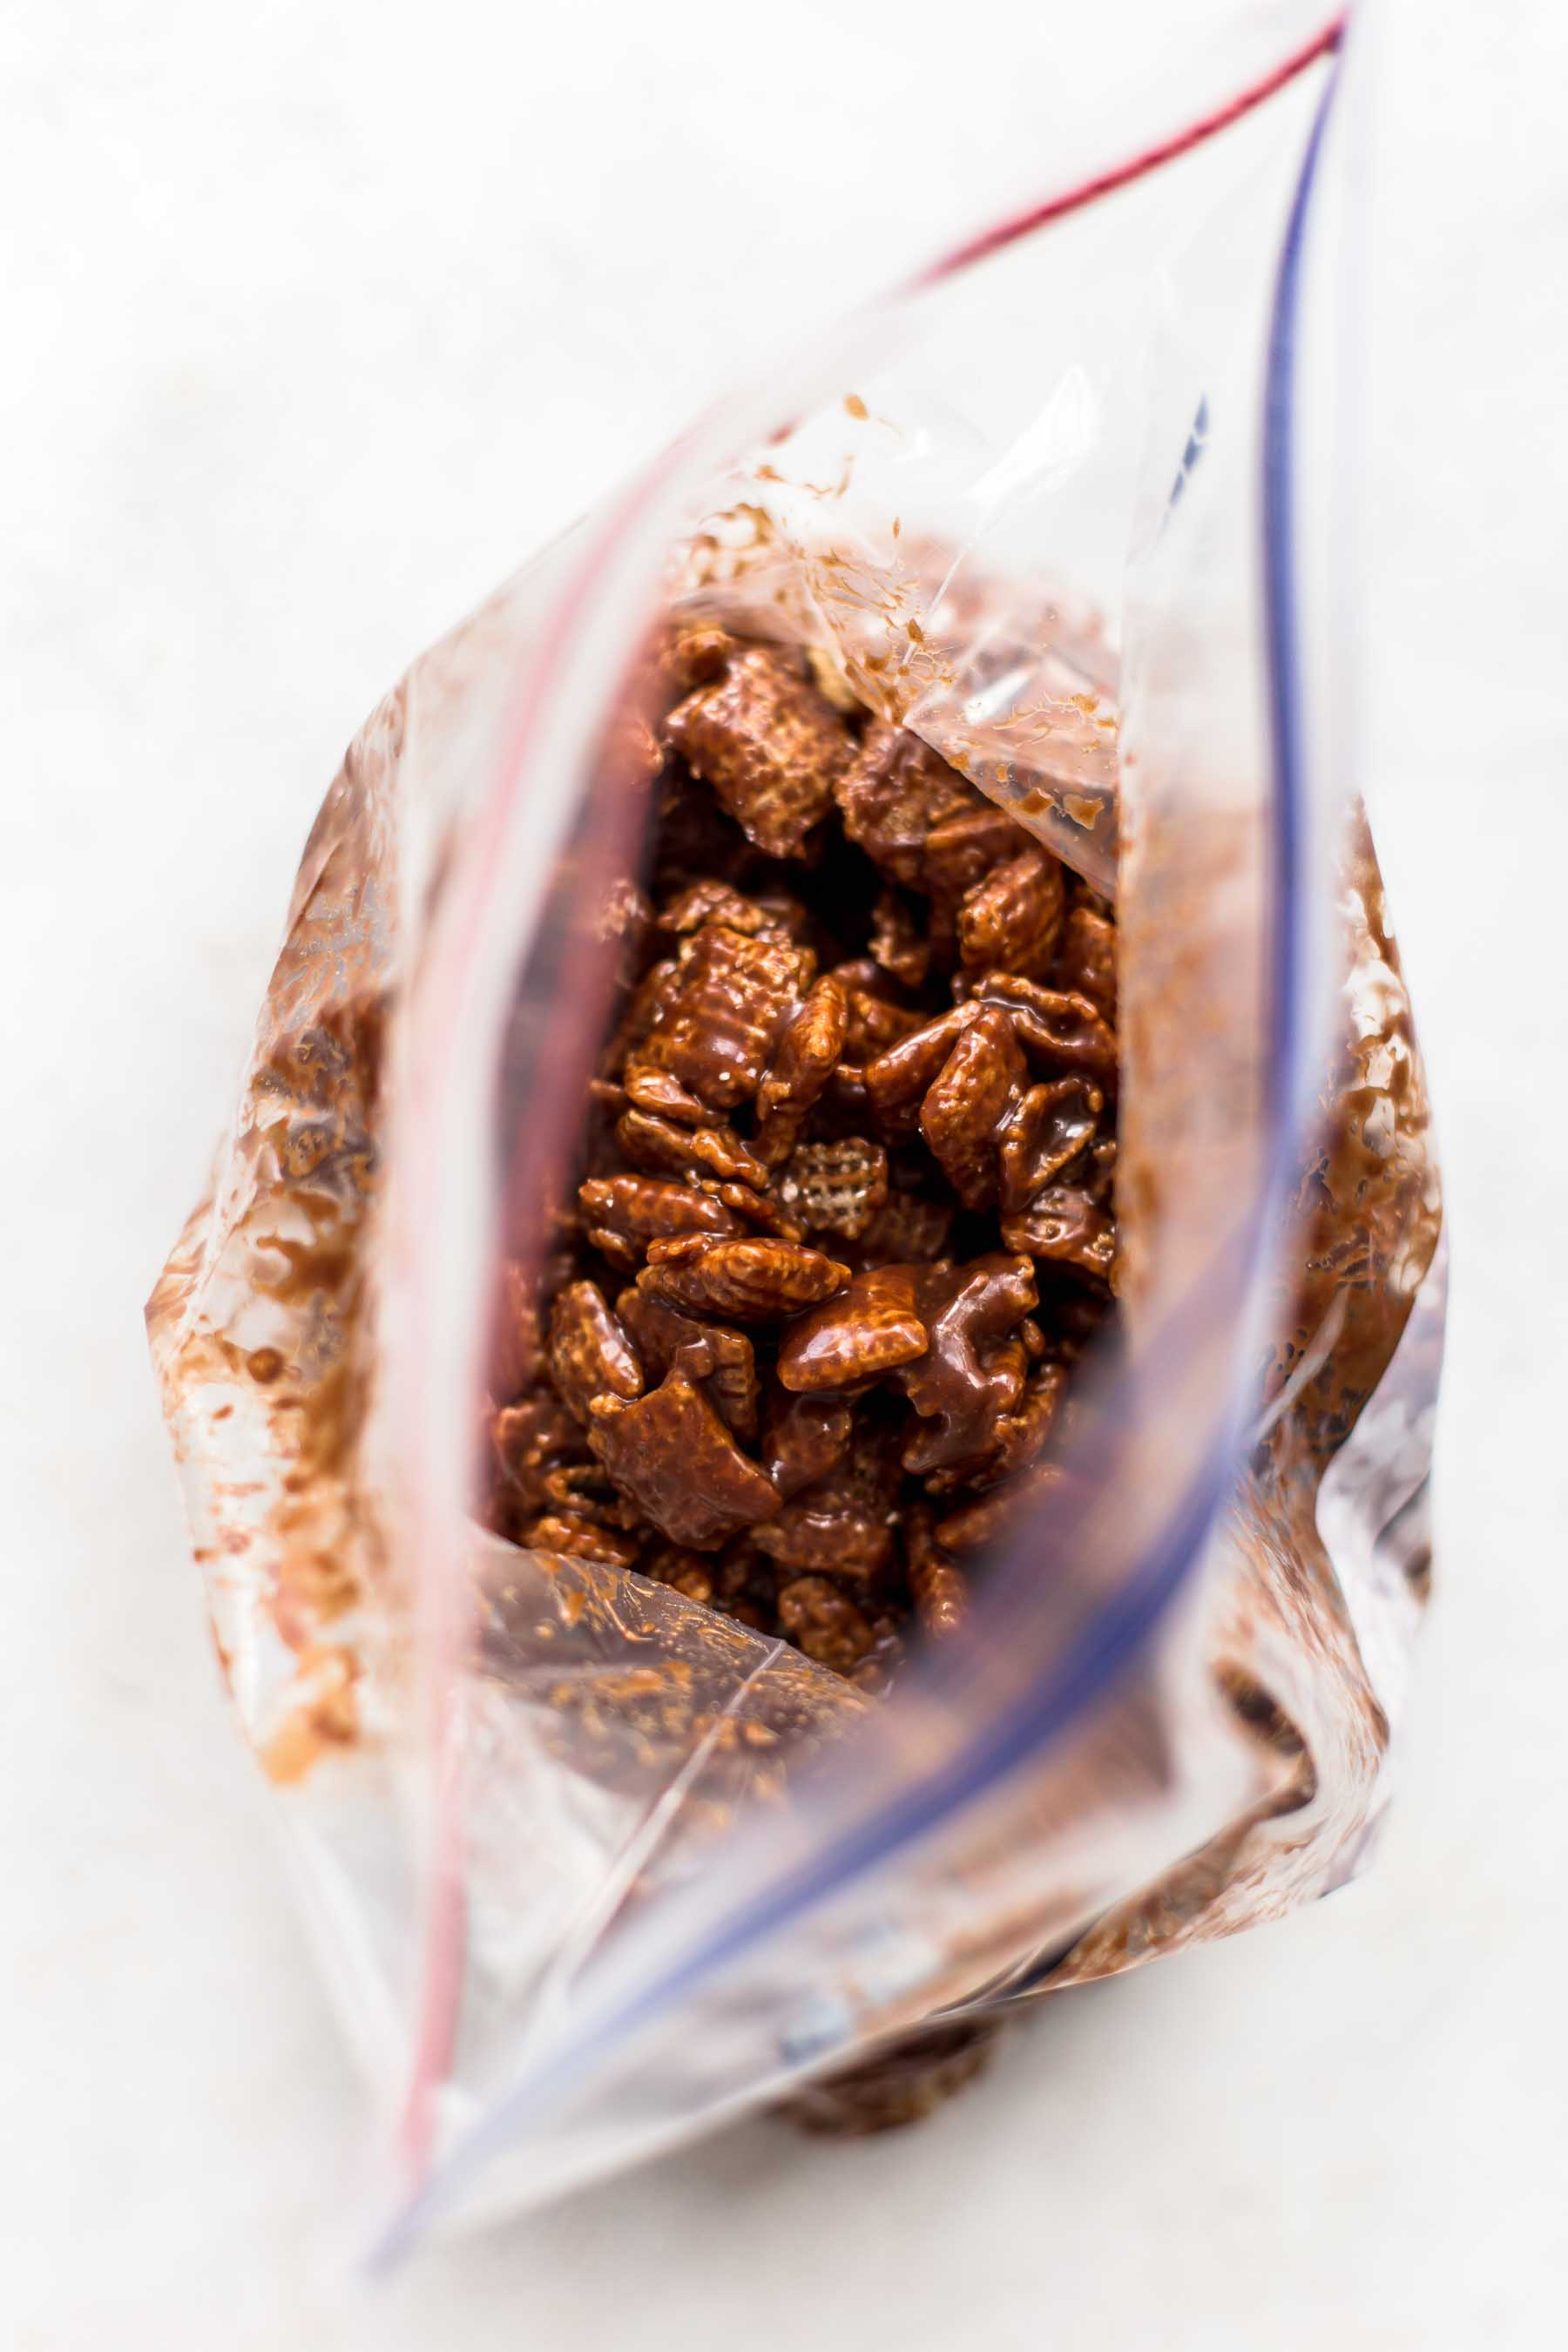 chocolate coated chex cereal in a ziploc bag